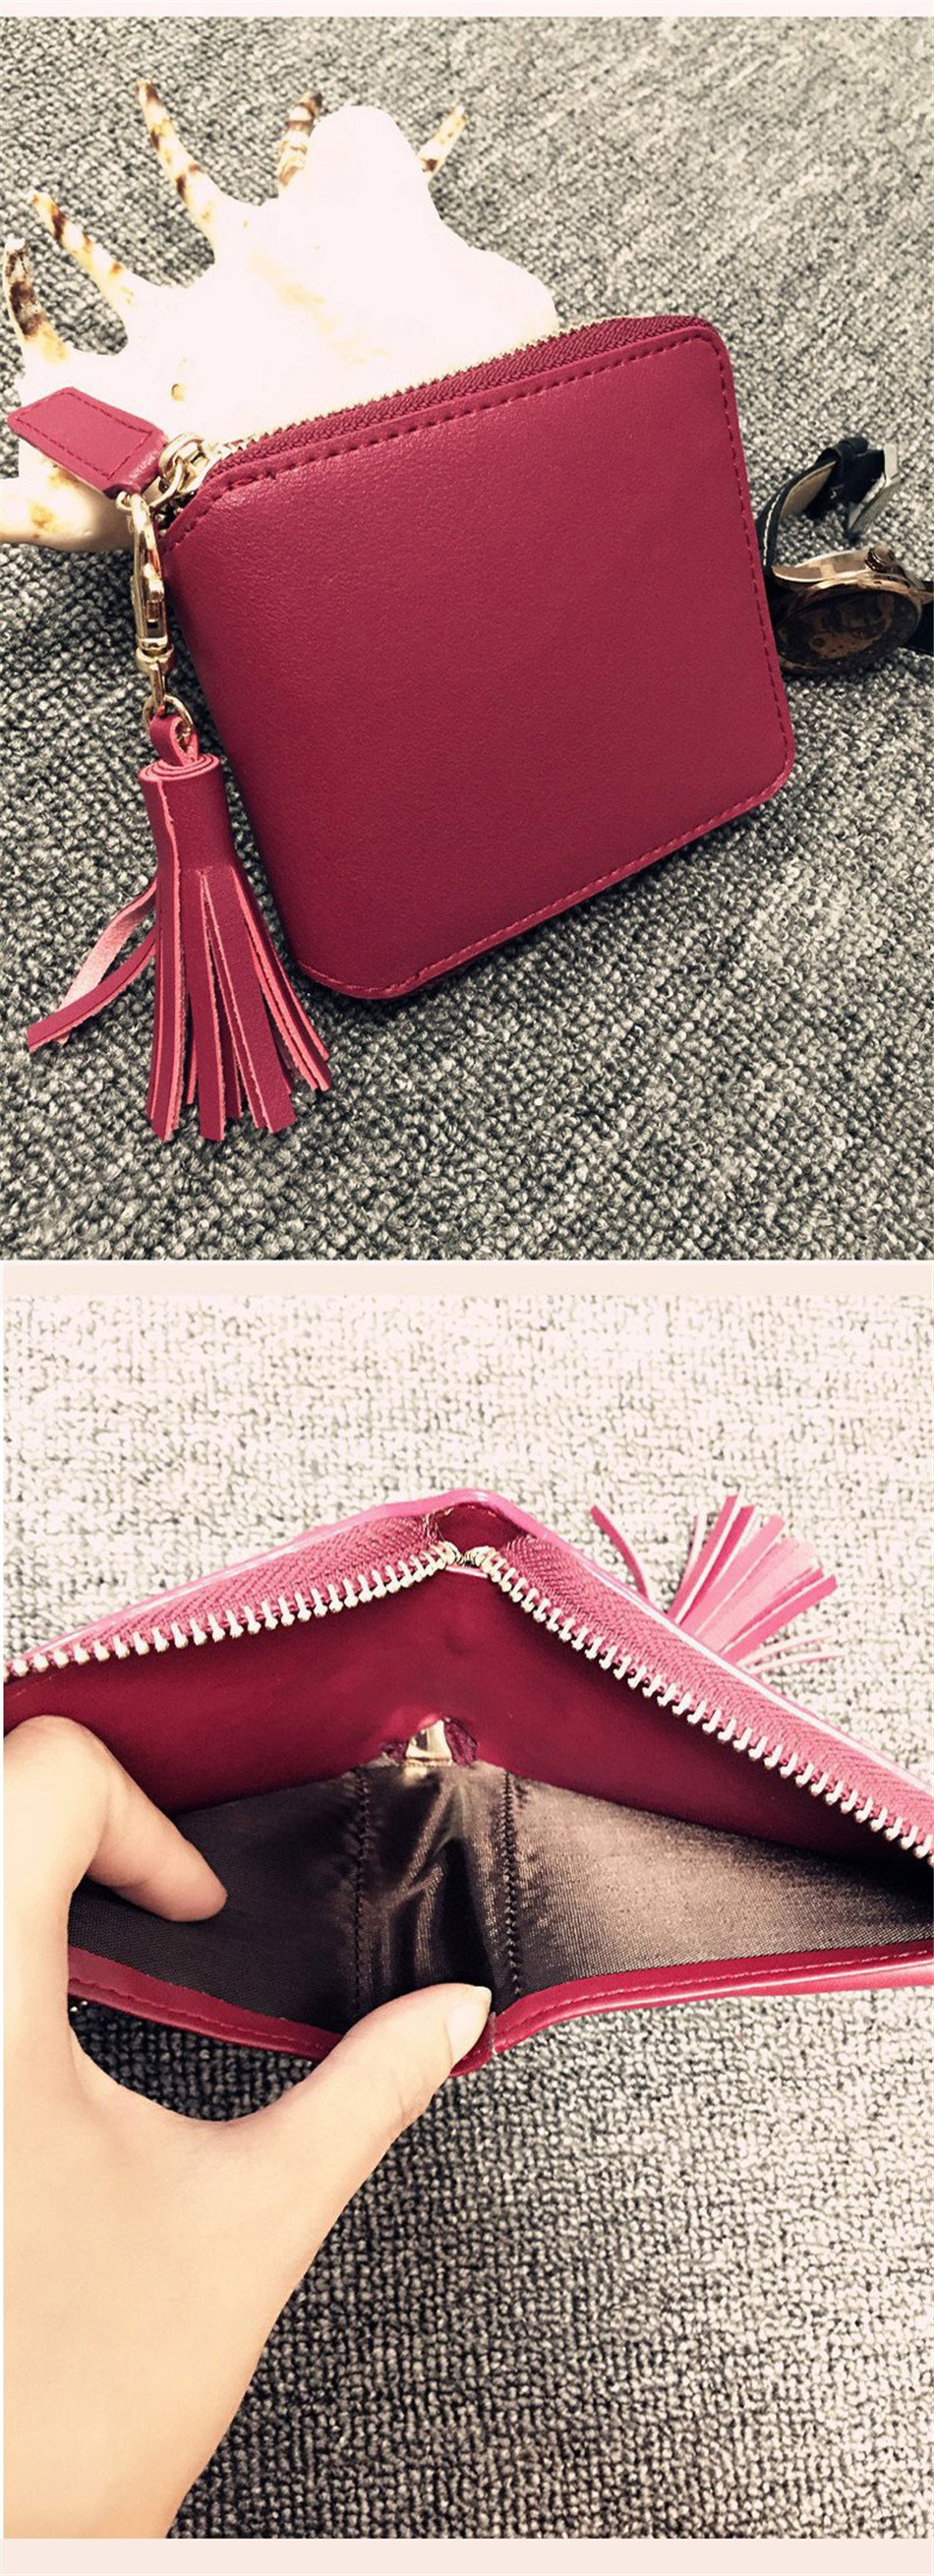 b96f0015ba53 Detail Feedback Questions about Women Coin Purses Tassel Coin Bag ...